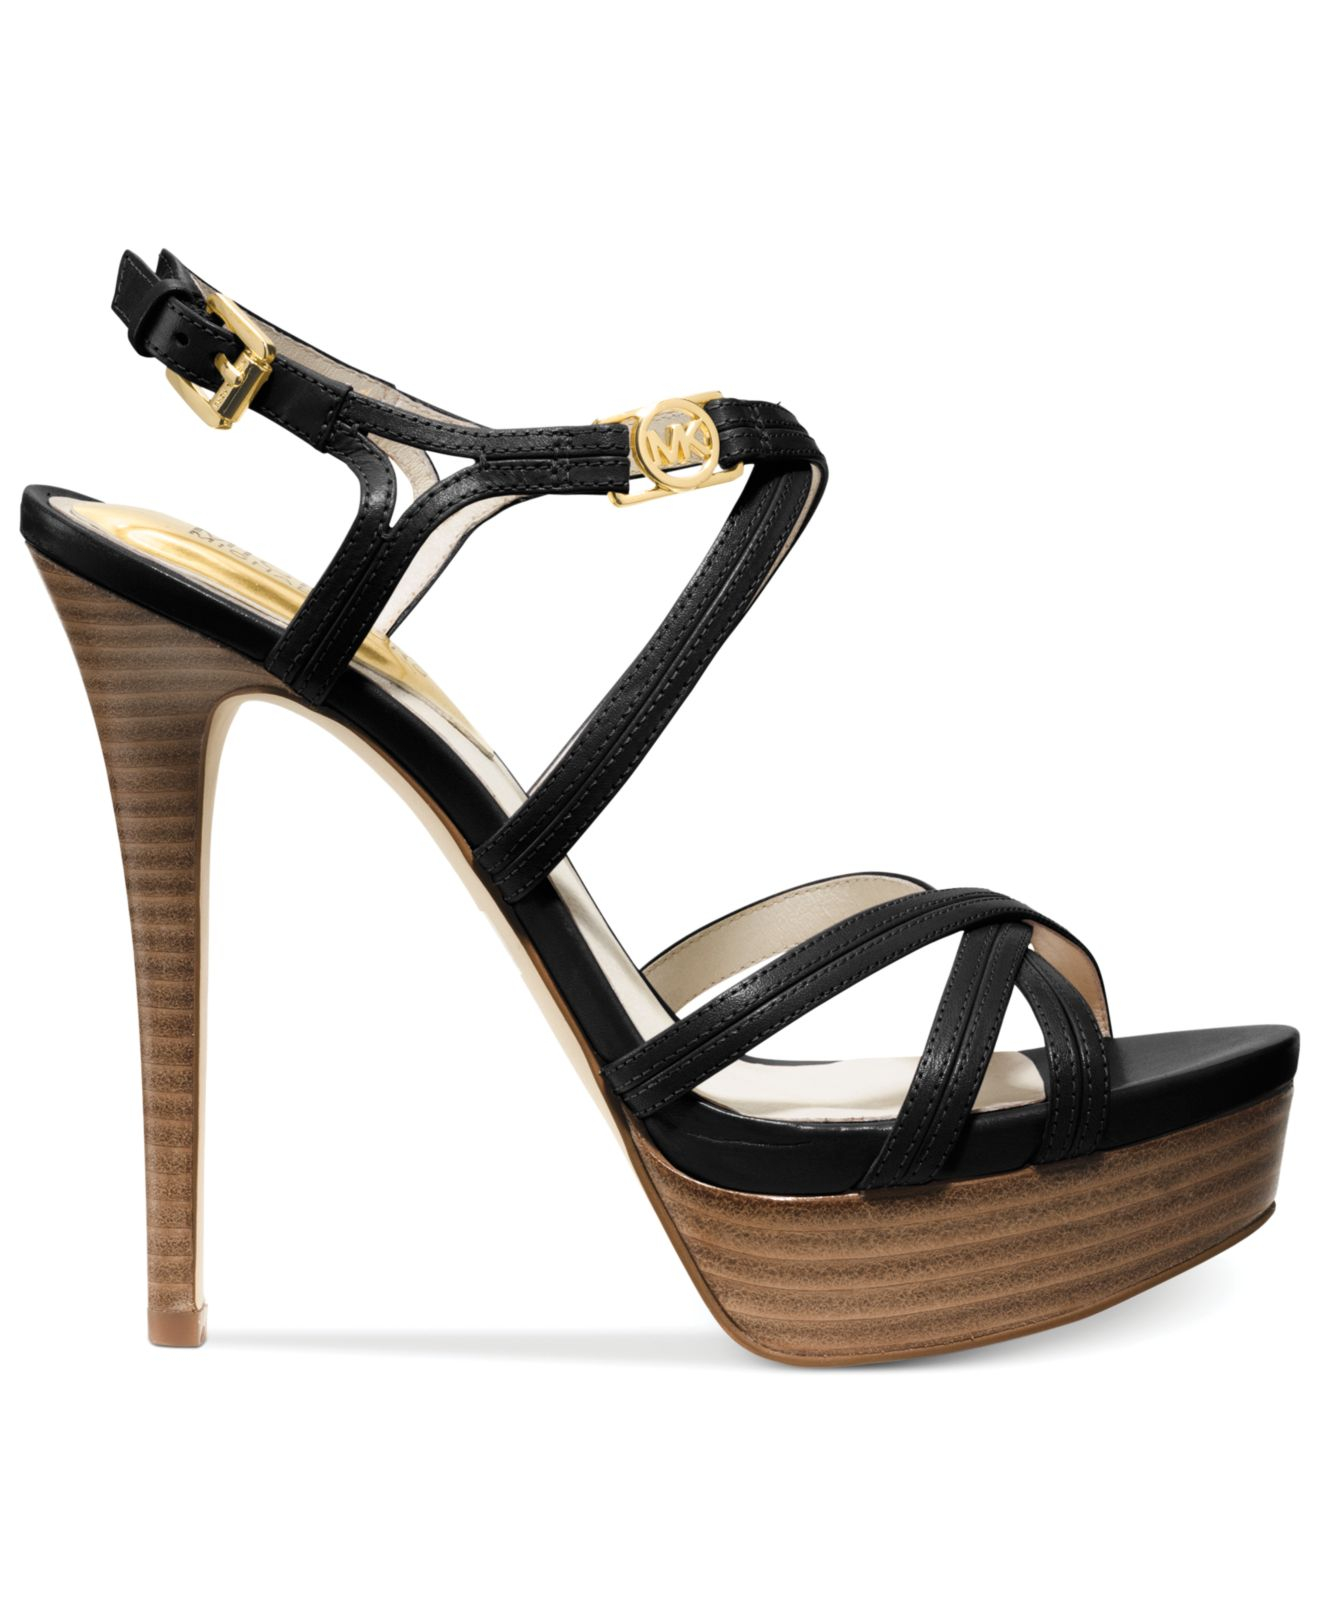 e7d3a67960b9 Lyst - Michael Kors Michael Cicely Platform Sandals in Black